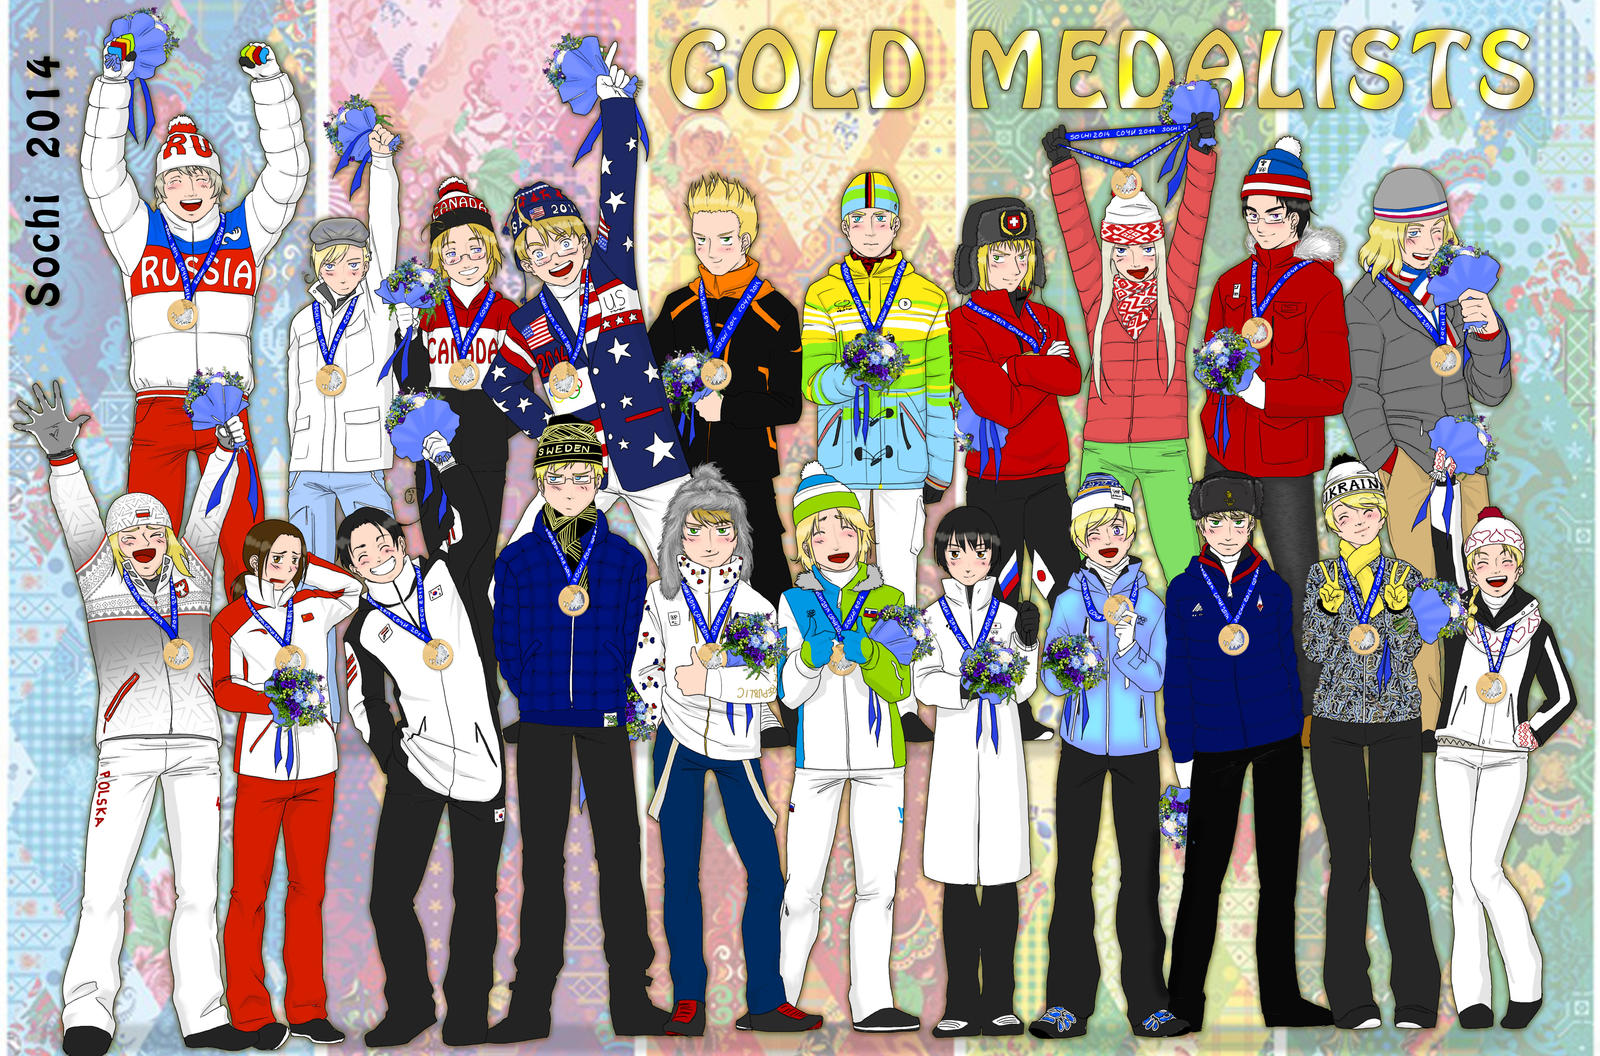 Golden Medalist of sochi by Janemin